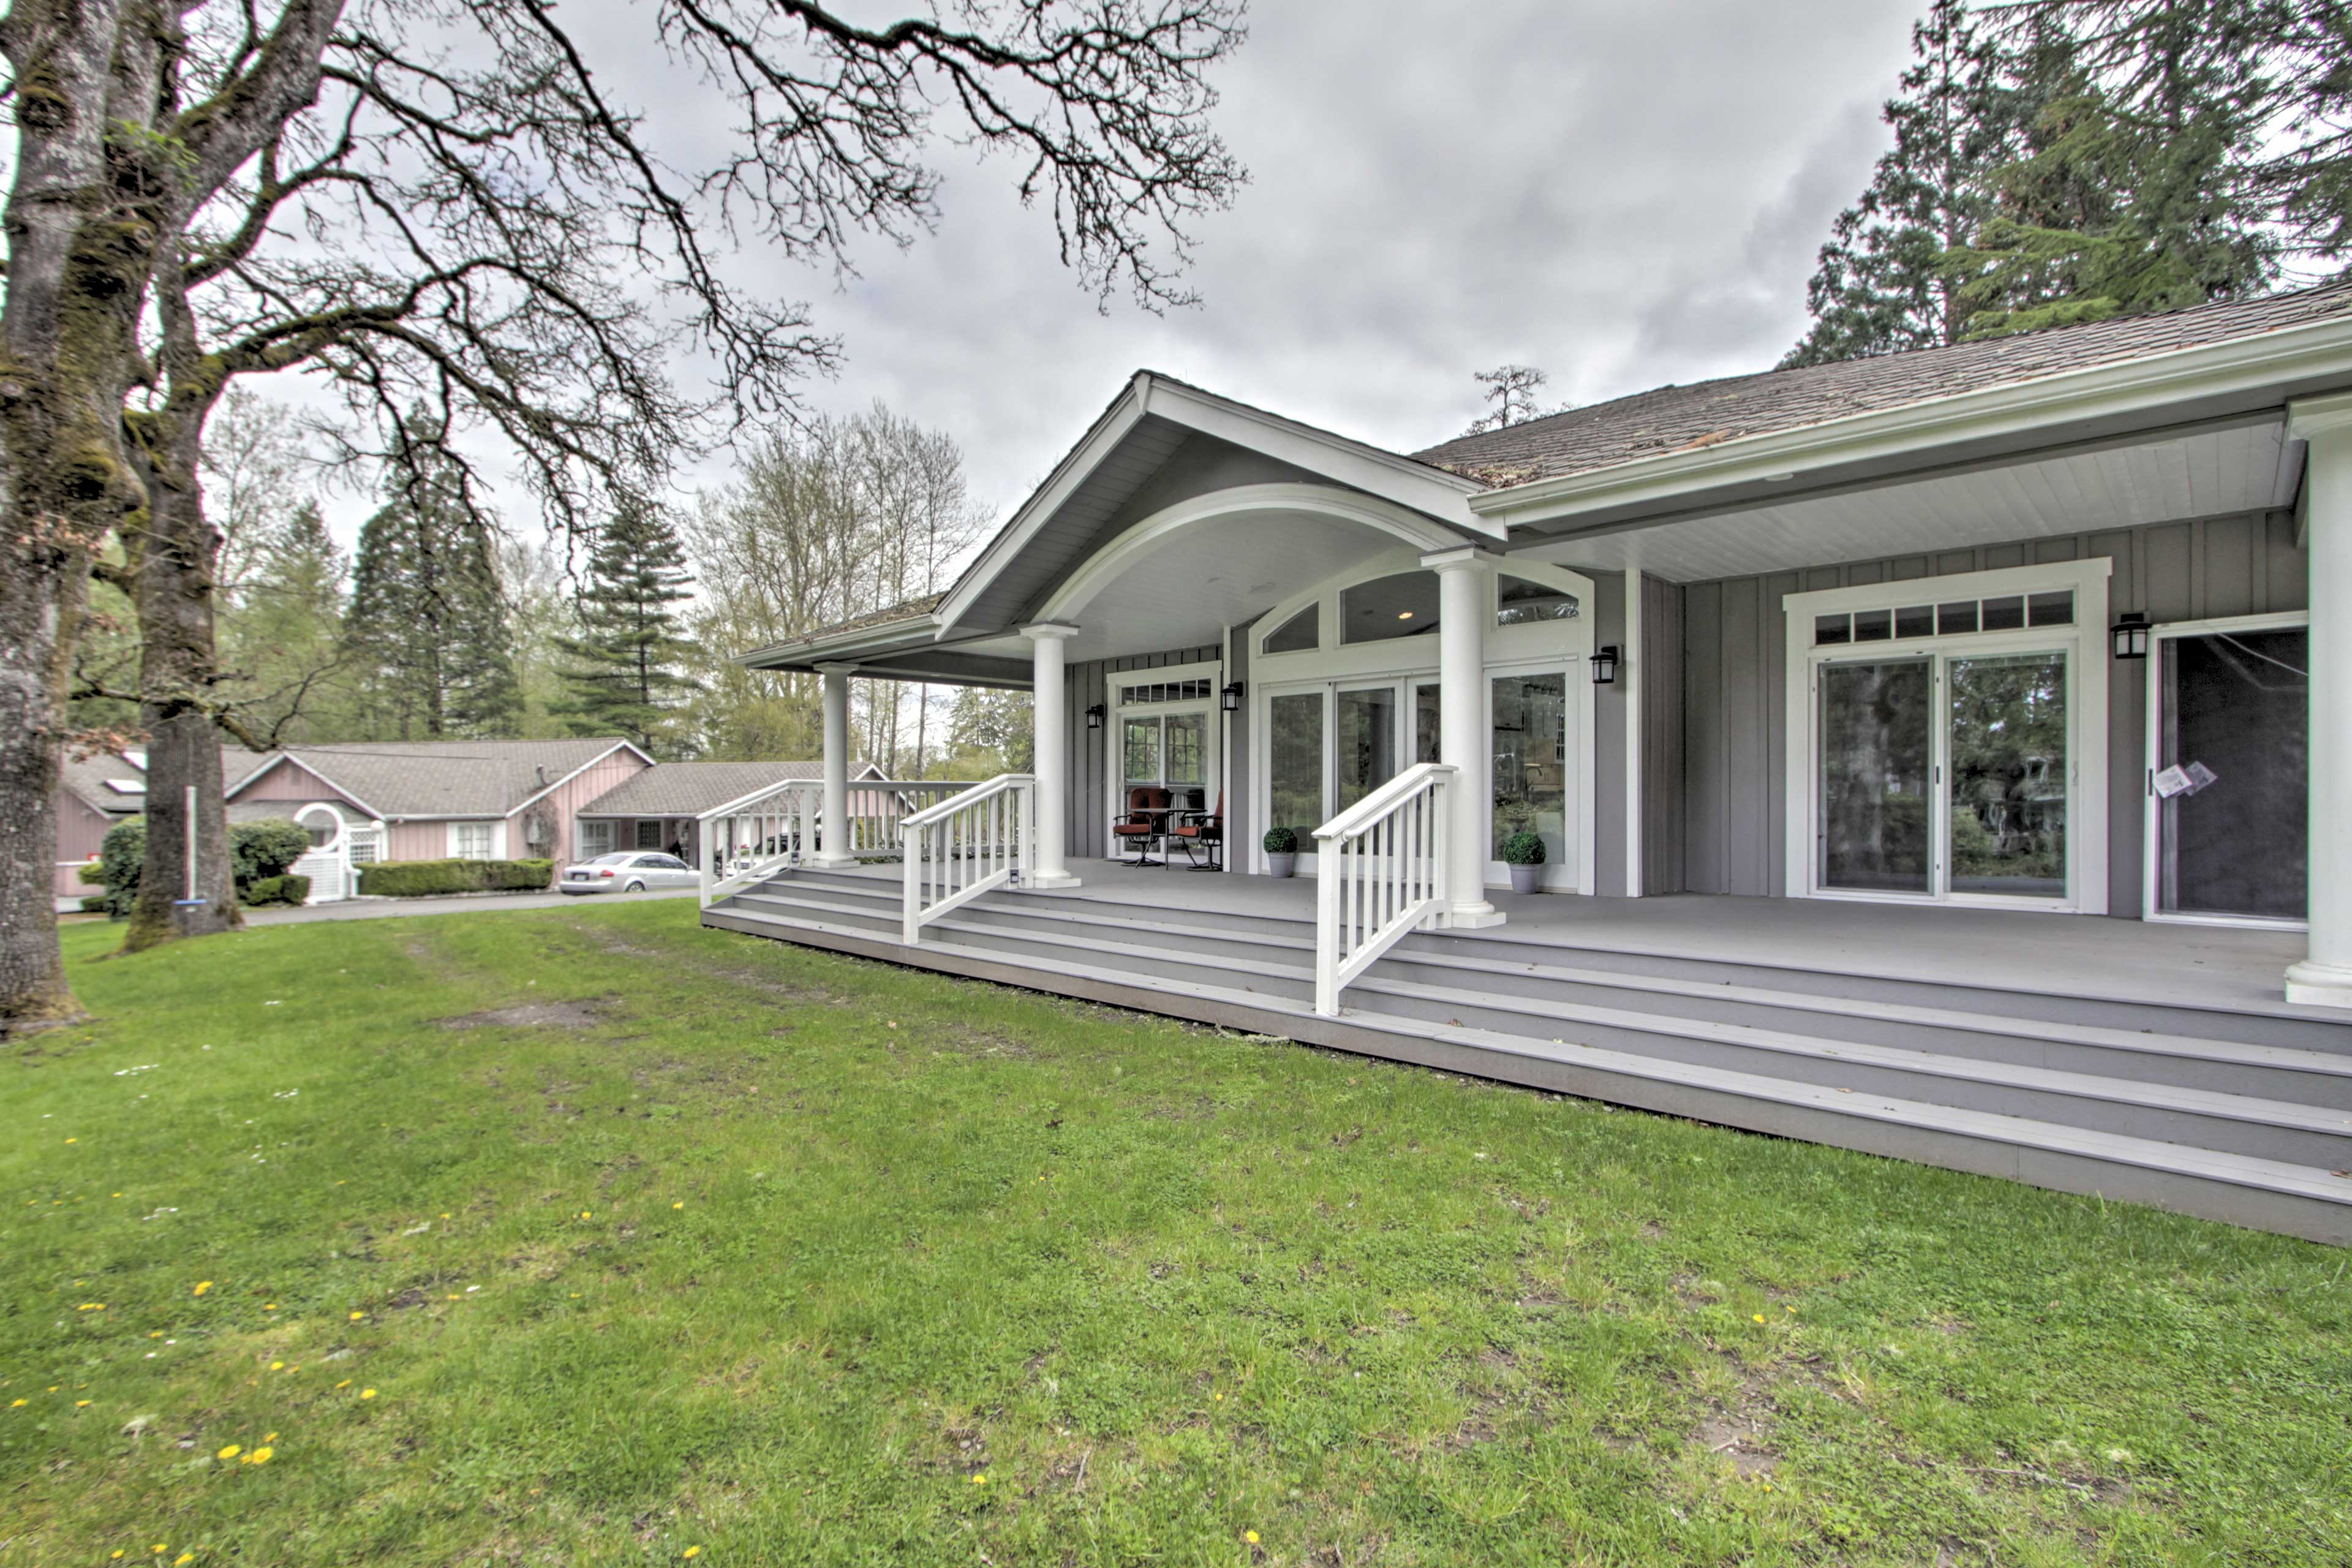 You'll never want to leave this quaint-yet-modern Tacoma cottage!